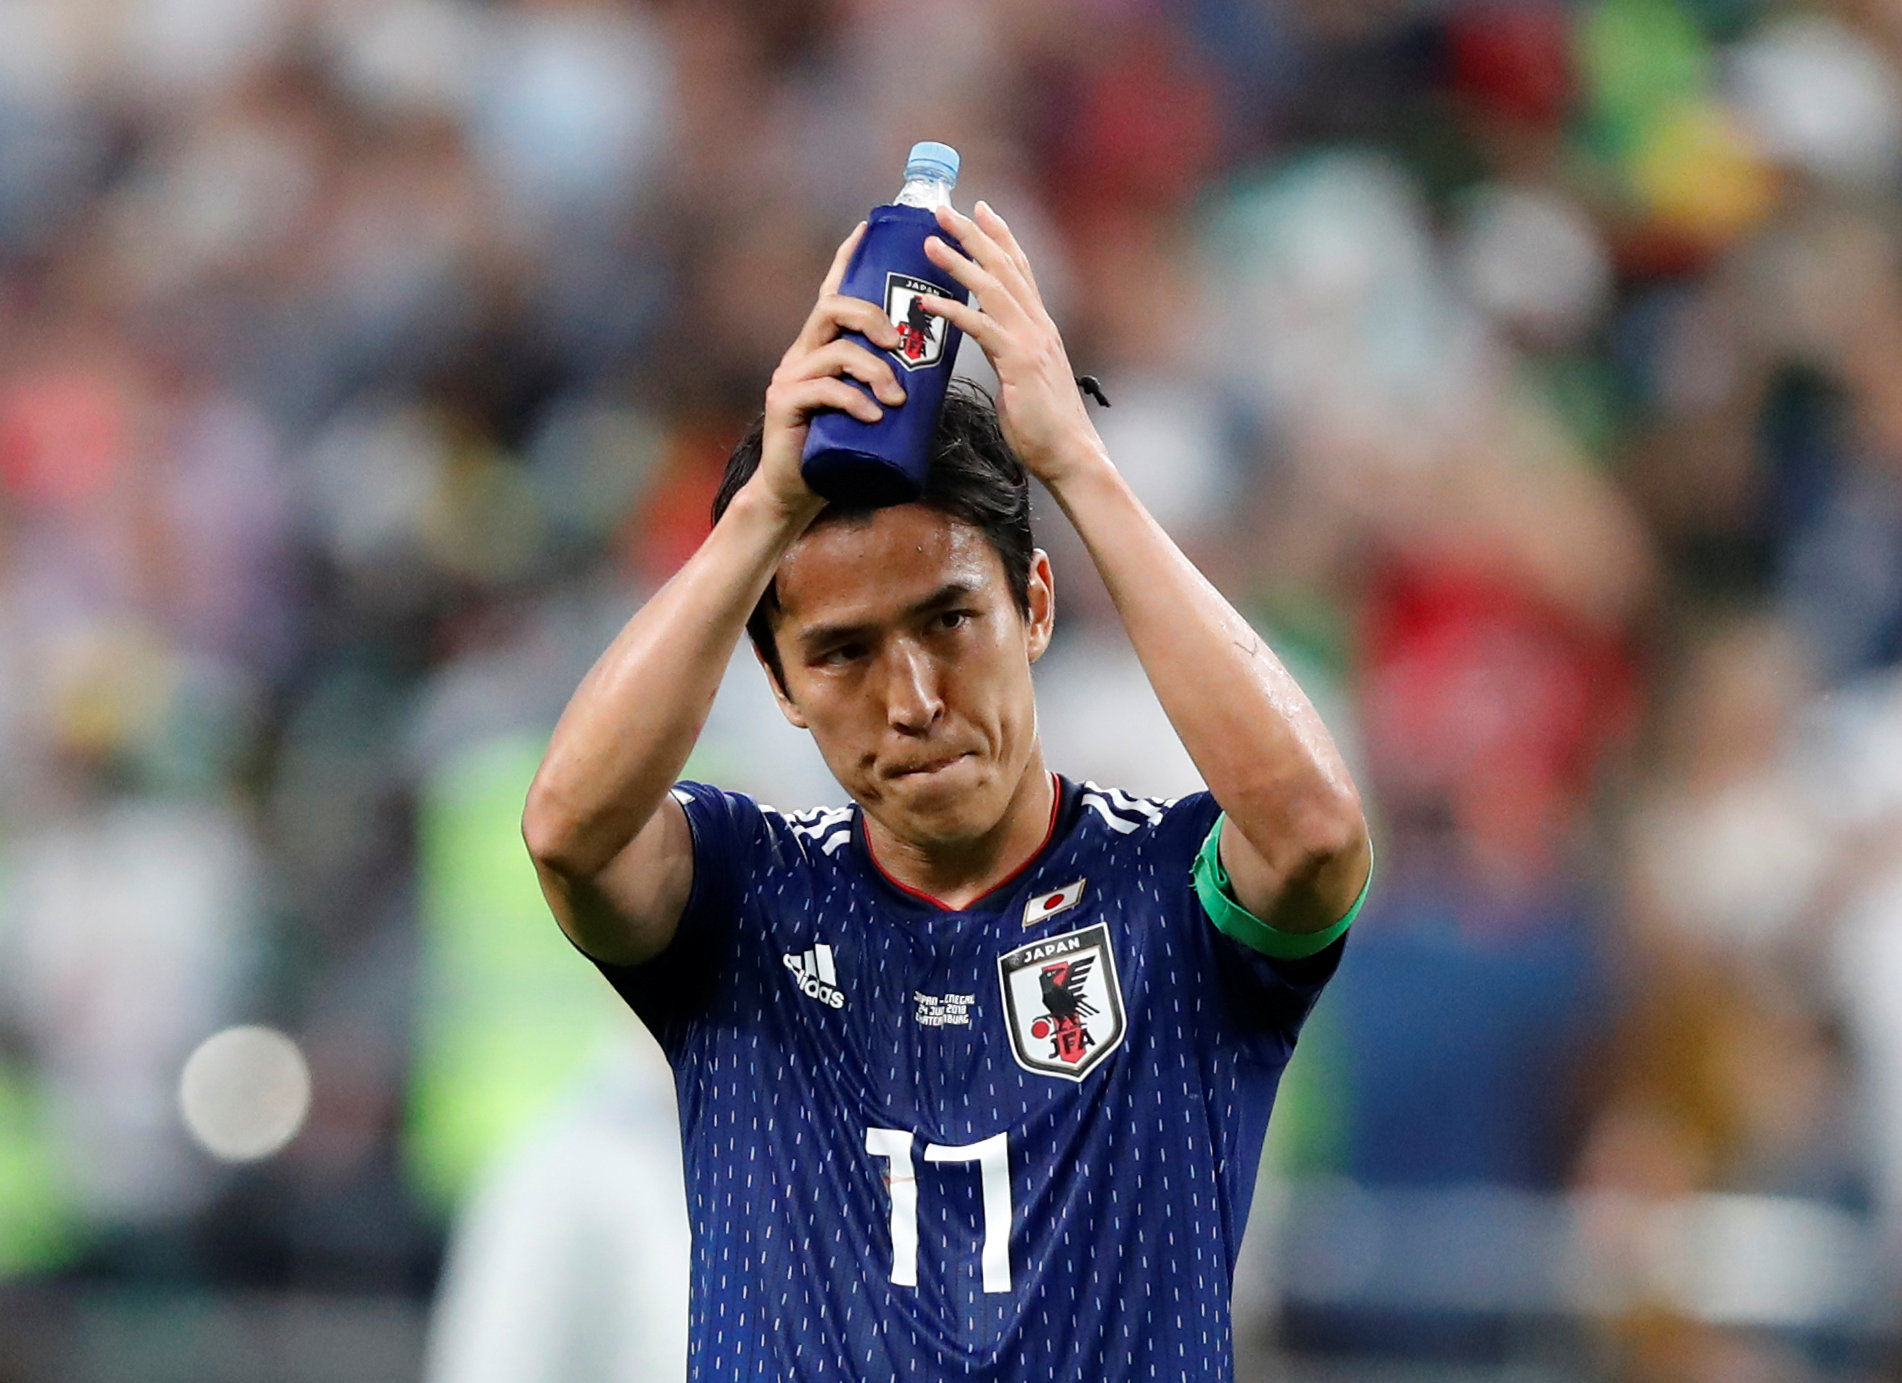 Football: Japan focus on winning not drawing, says captain Hasebe